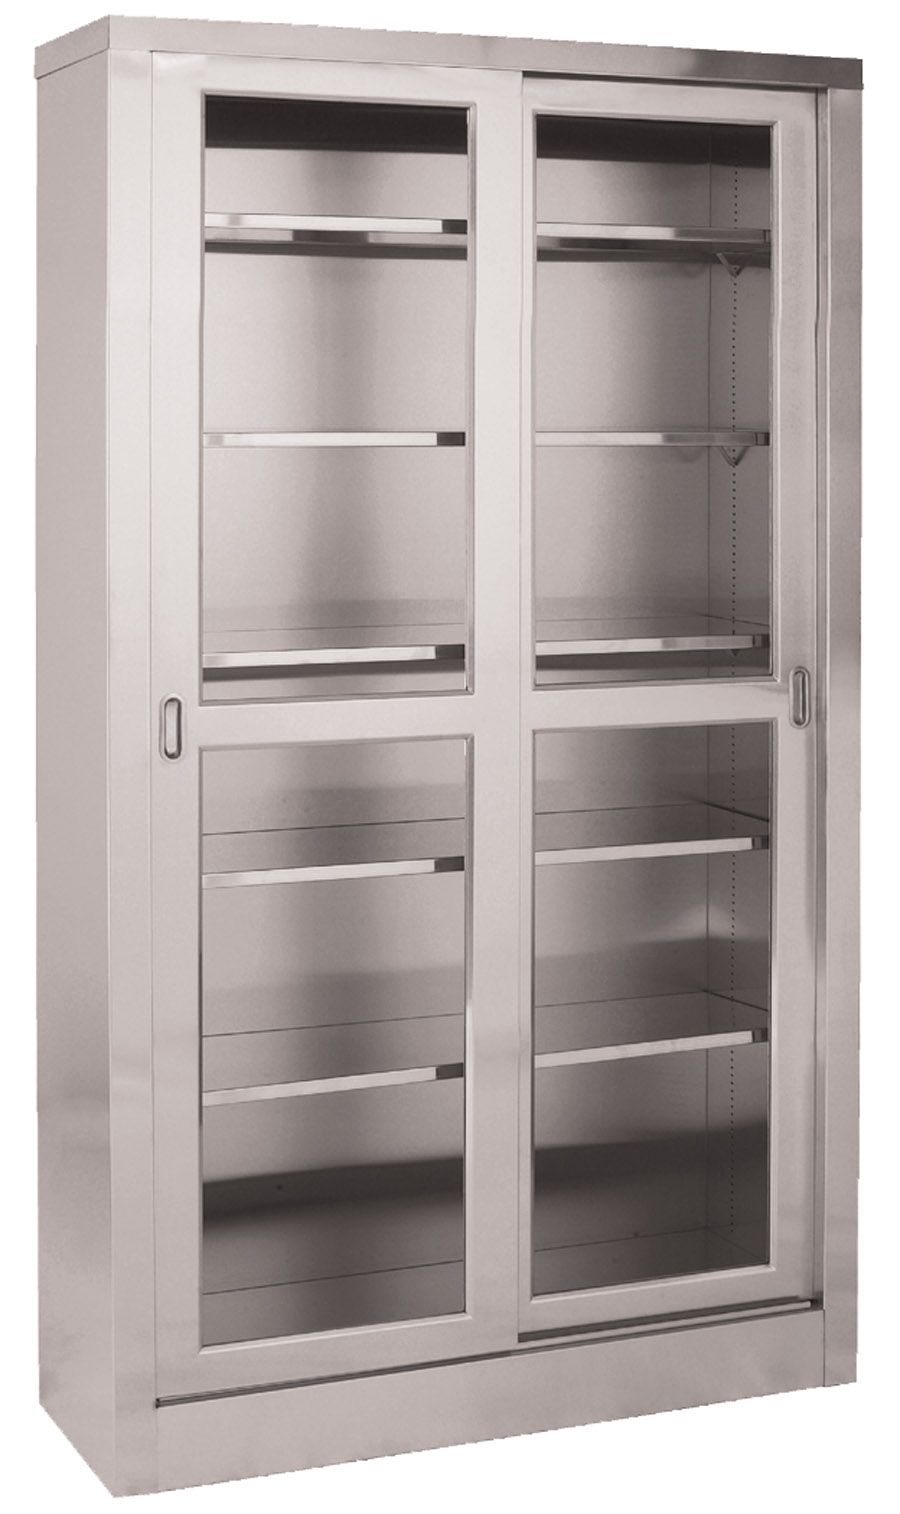 Stainless Steel Storage Cabinets With Doors Wood Projects